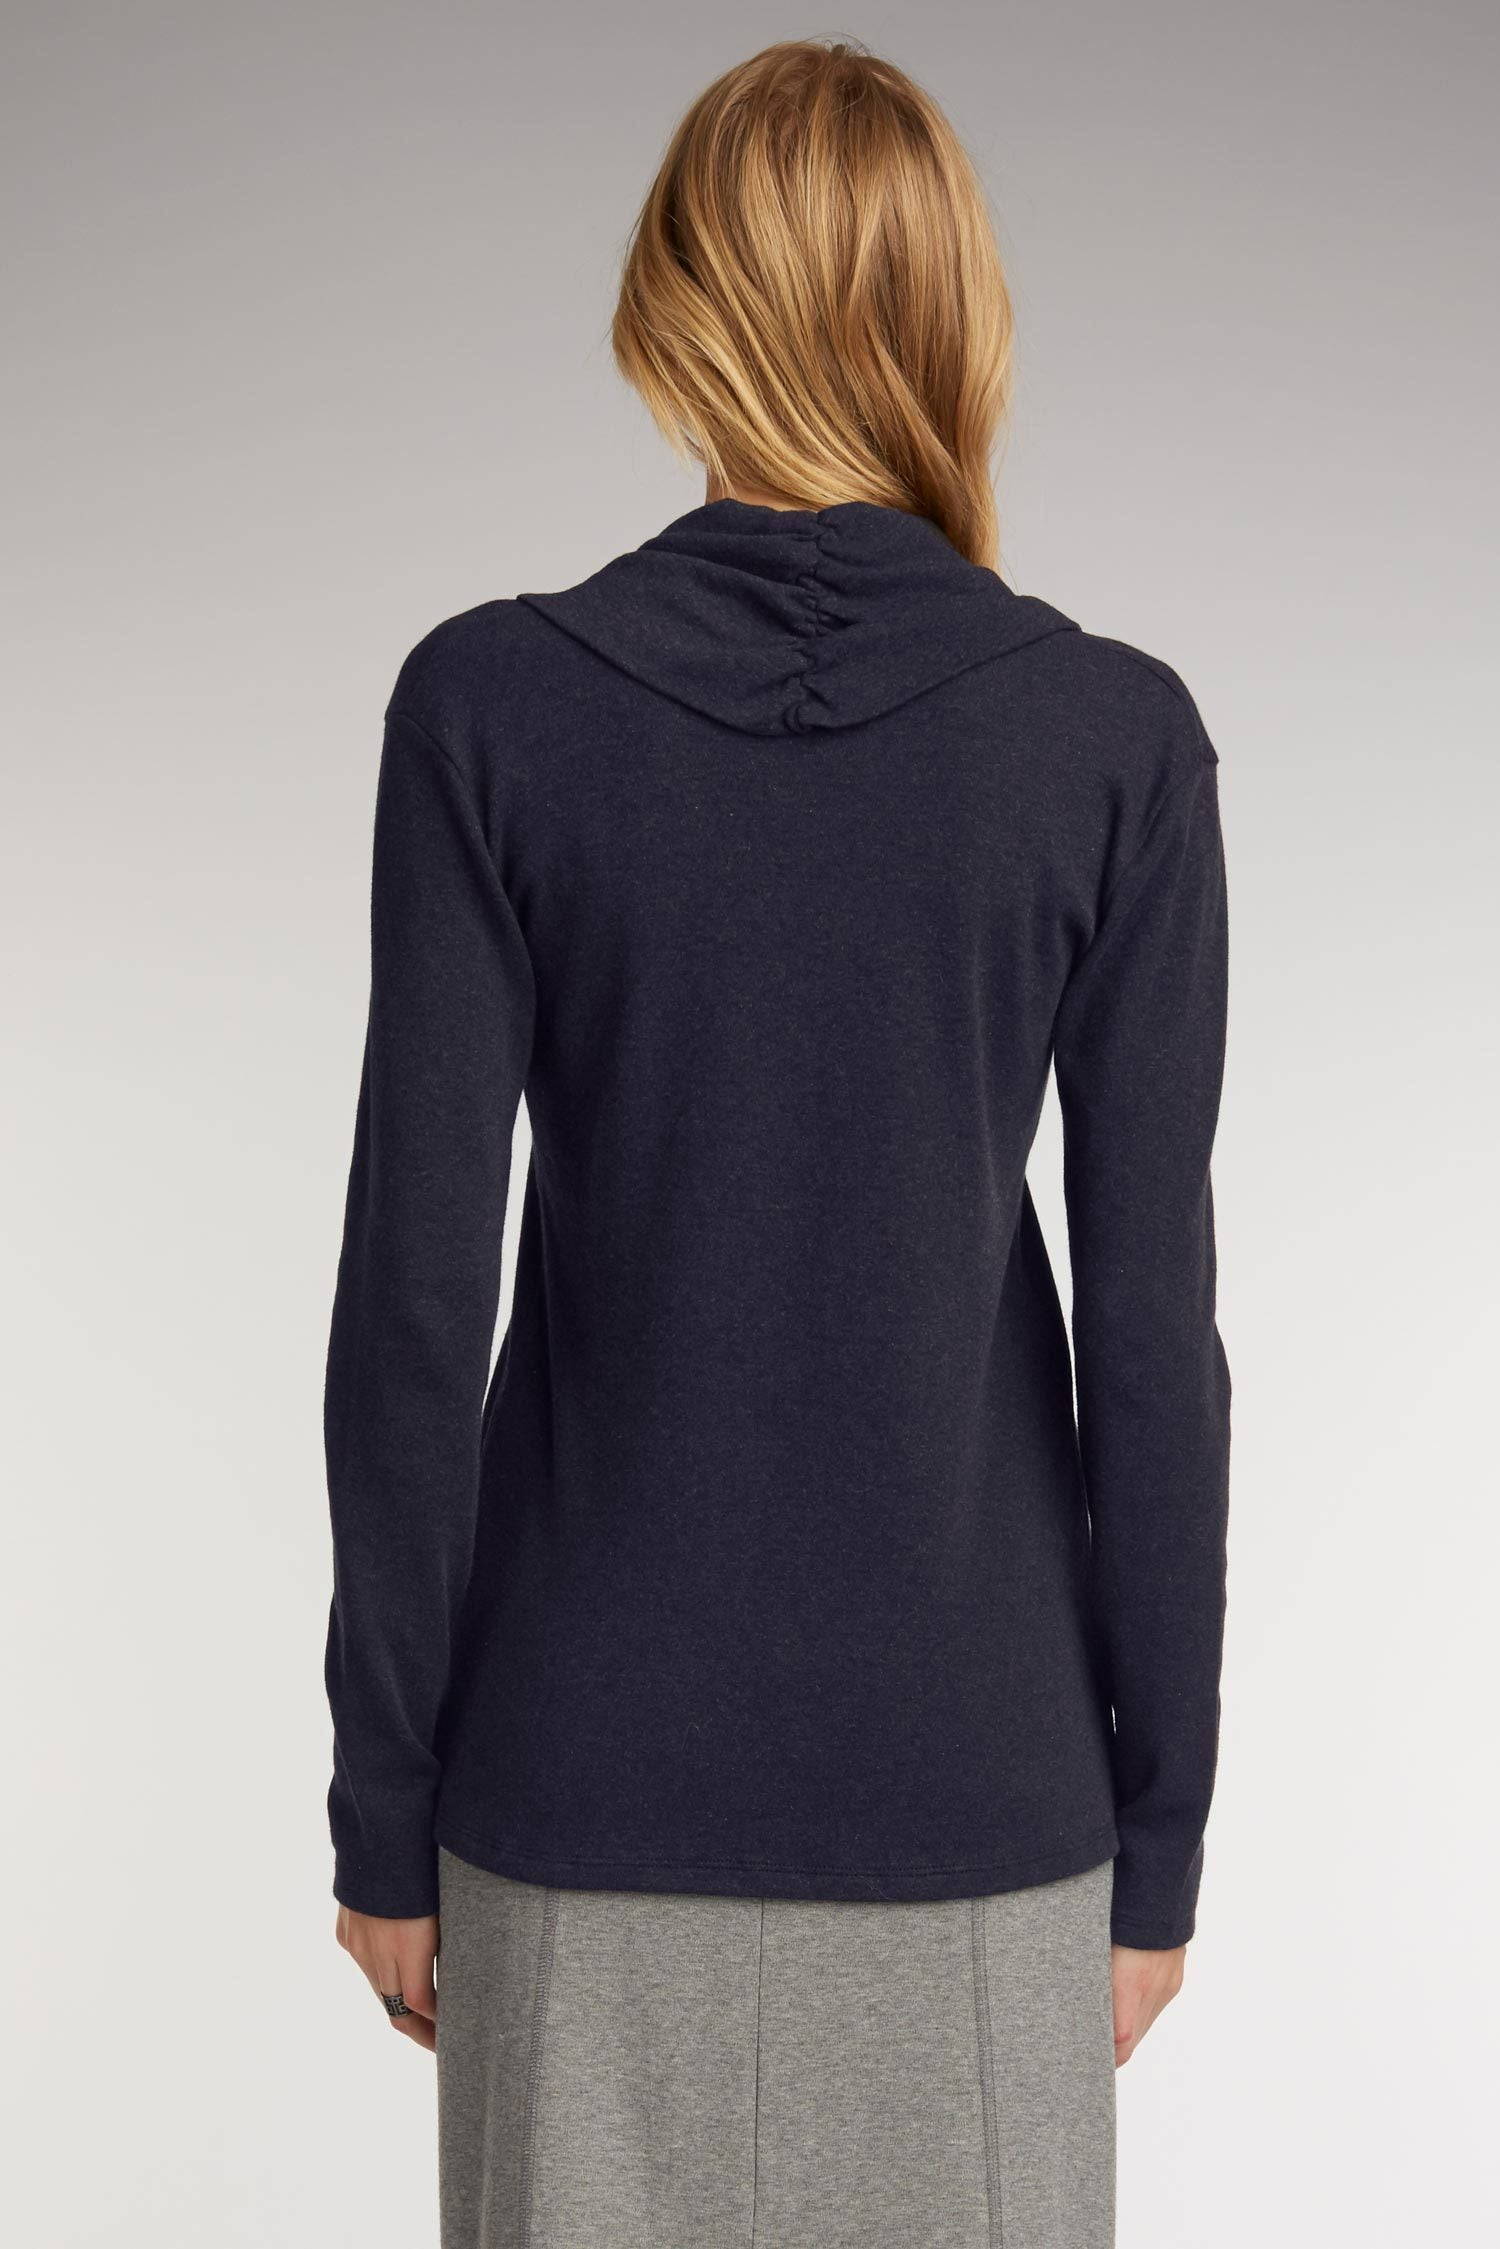 Womens Sustainable Clothing Top in Navy Blue Organic Cotton